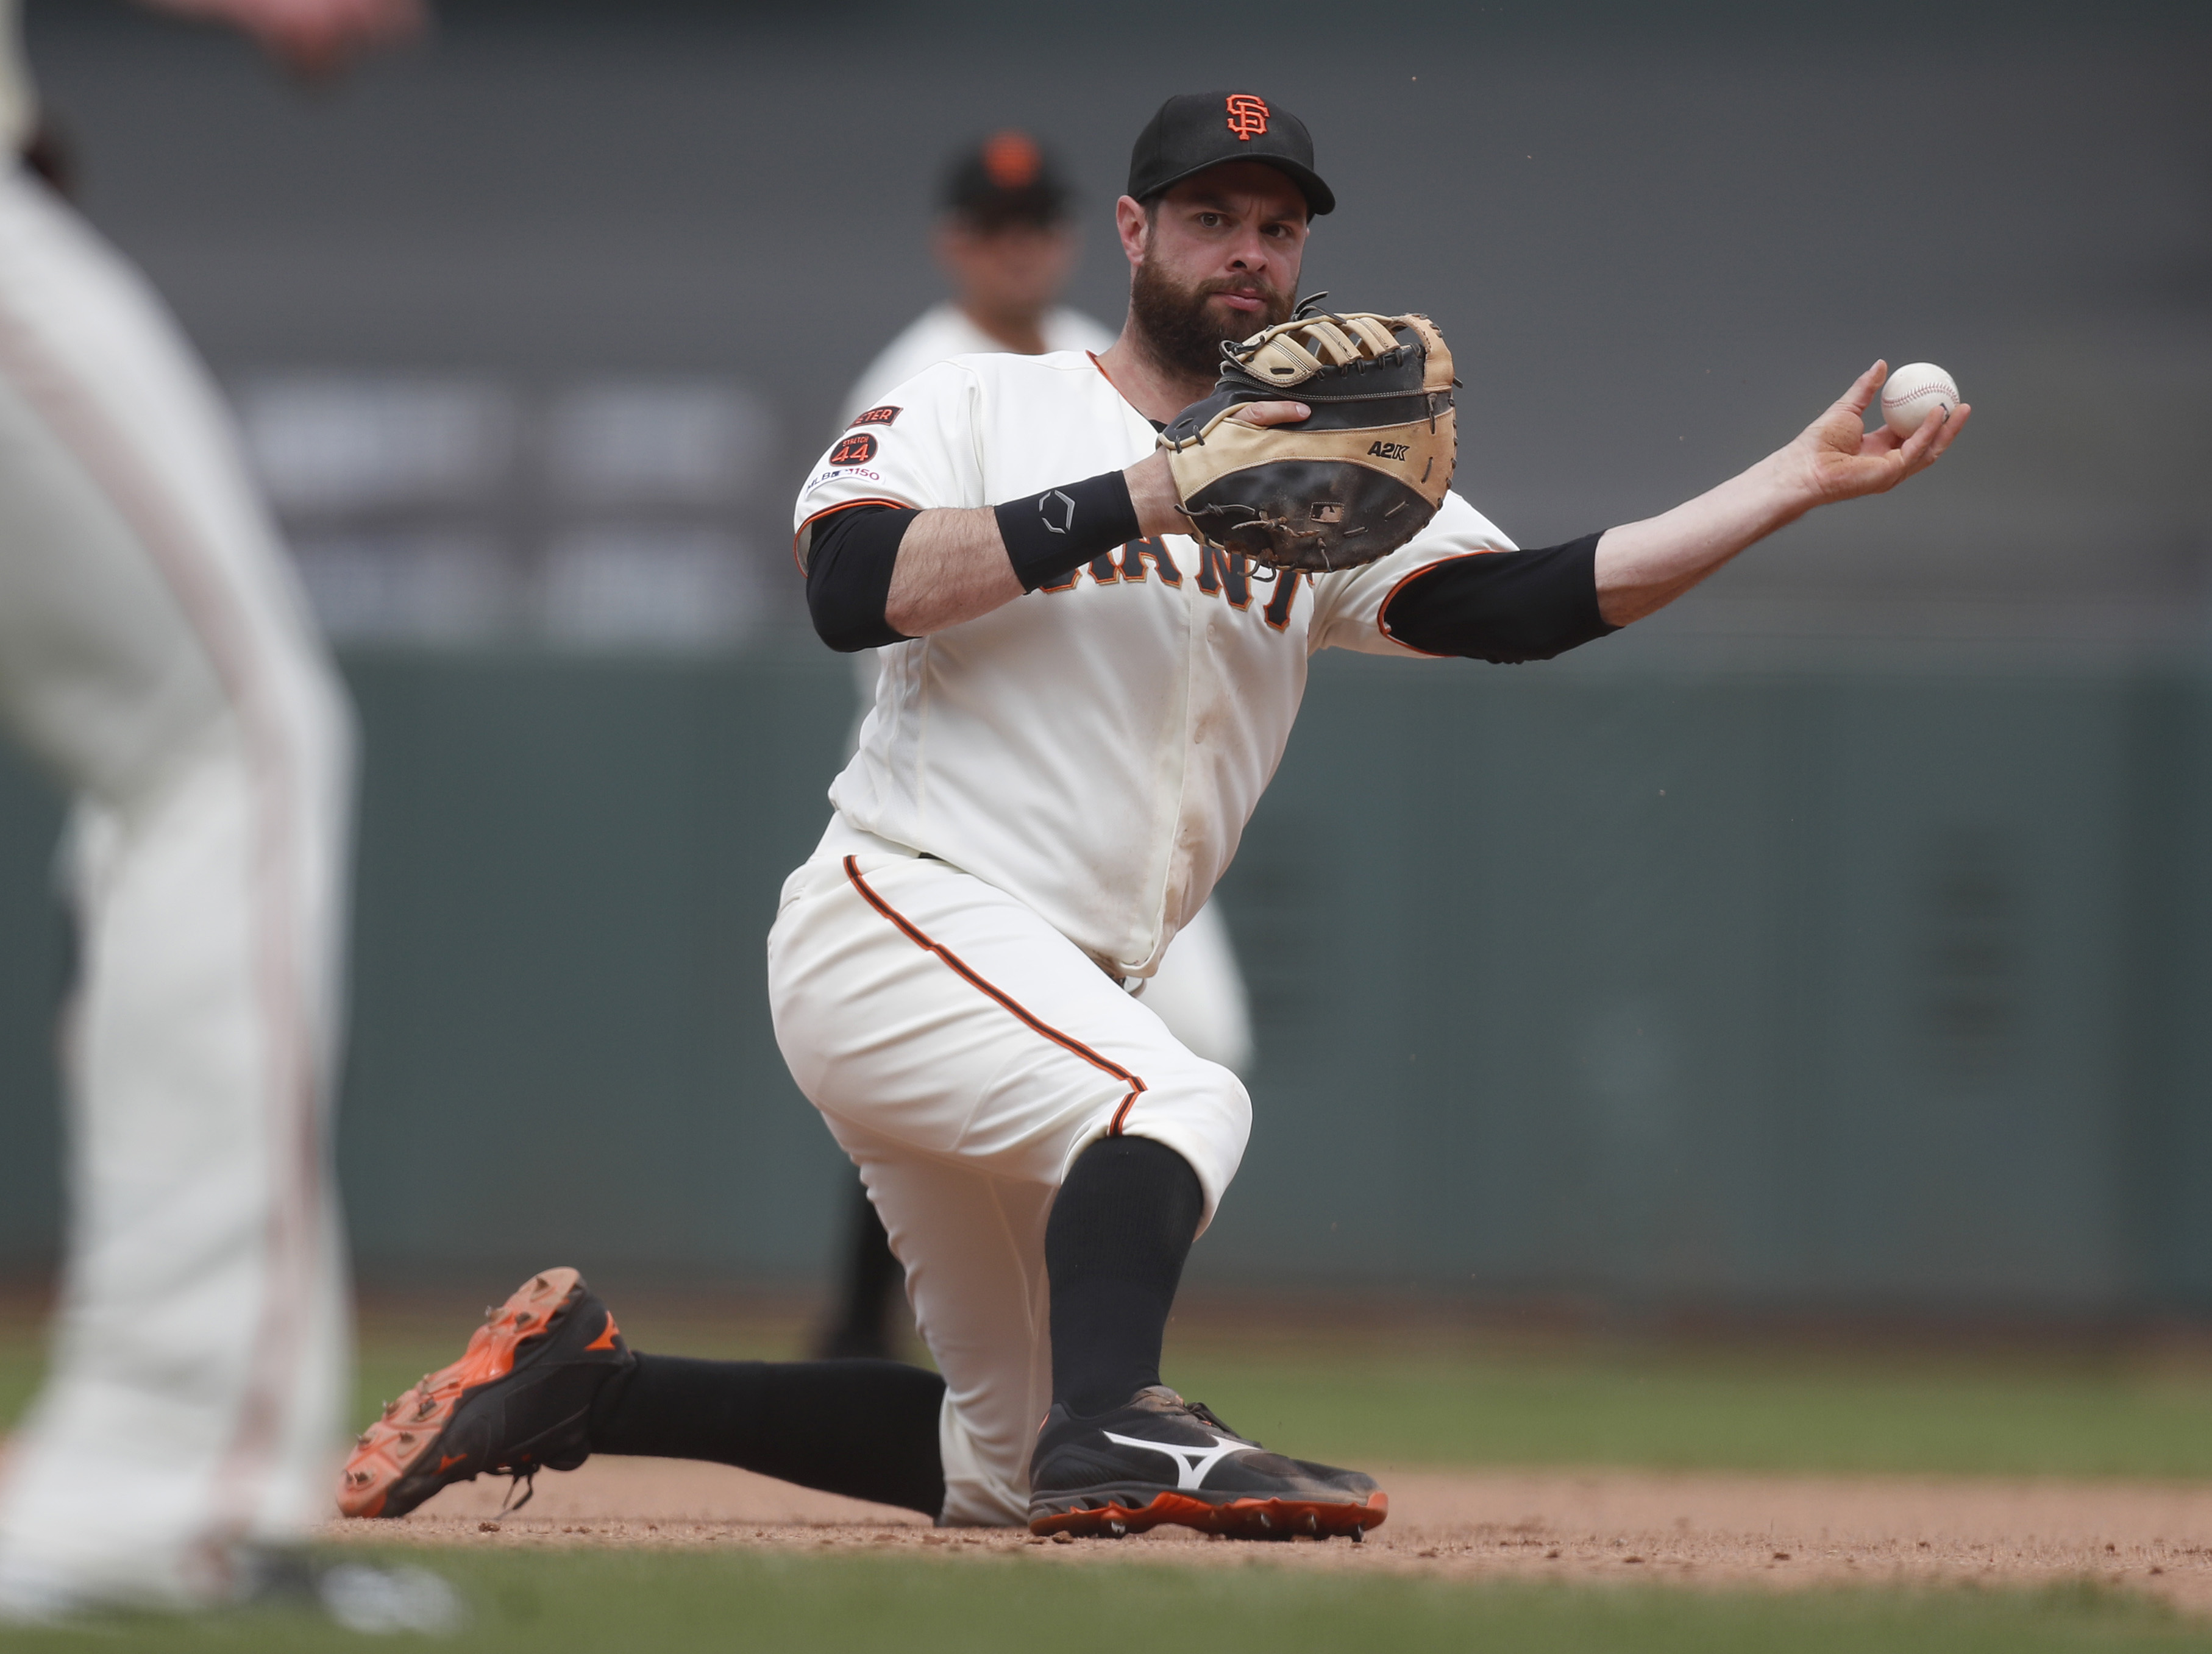 SF Giants' way too early 2021 Opening Day roster prediction